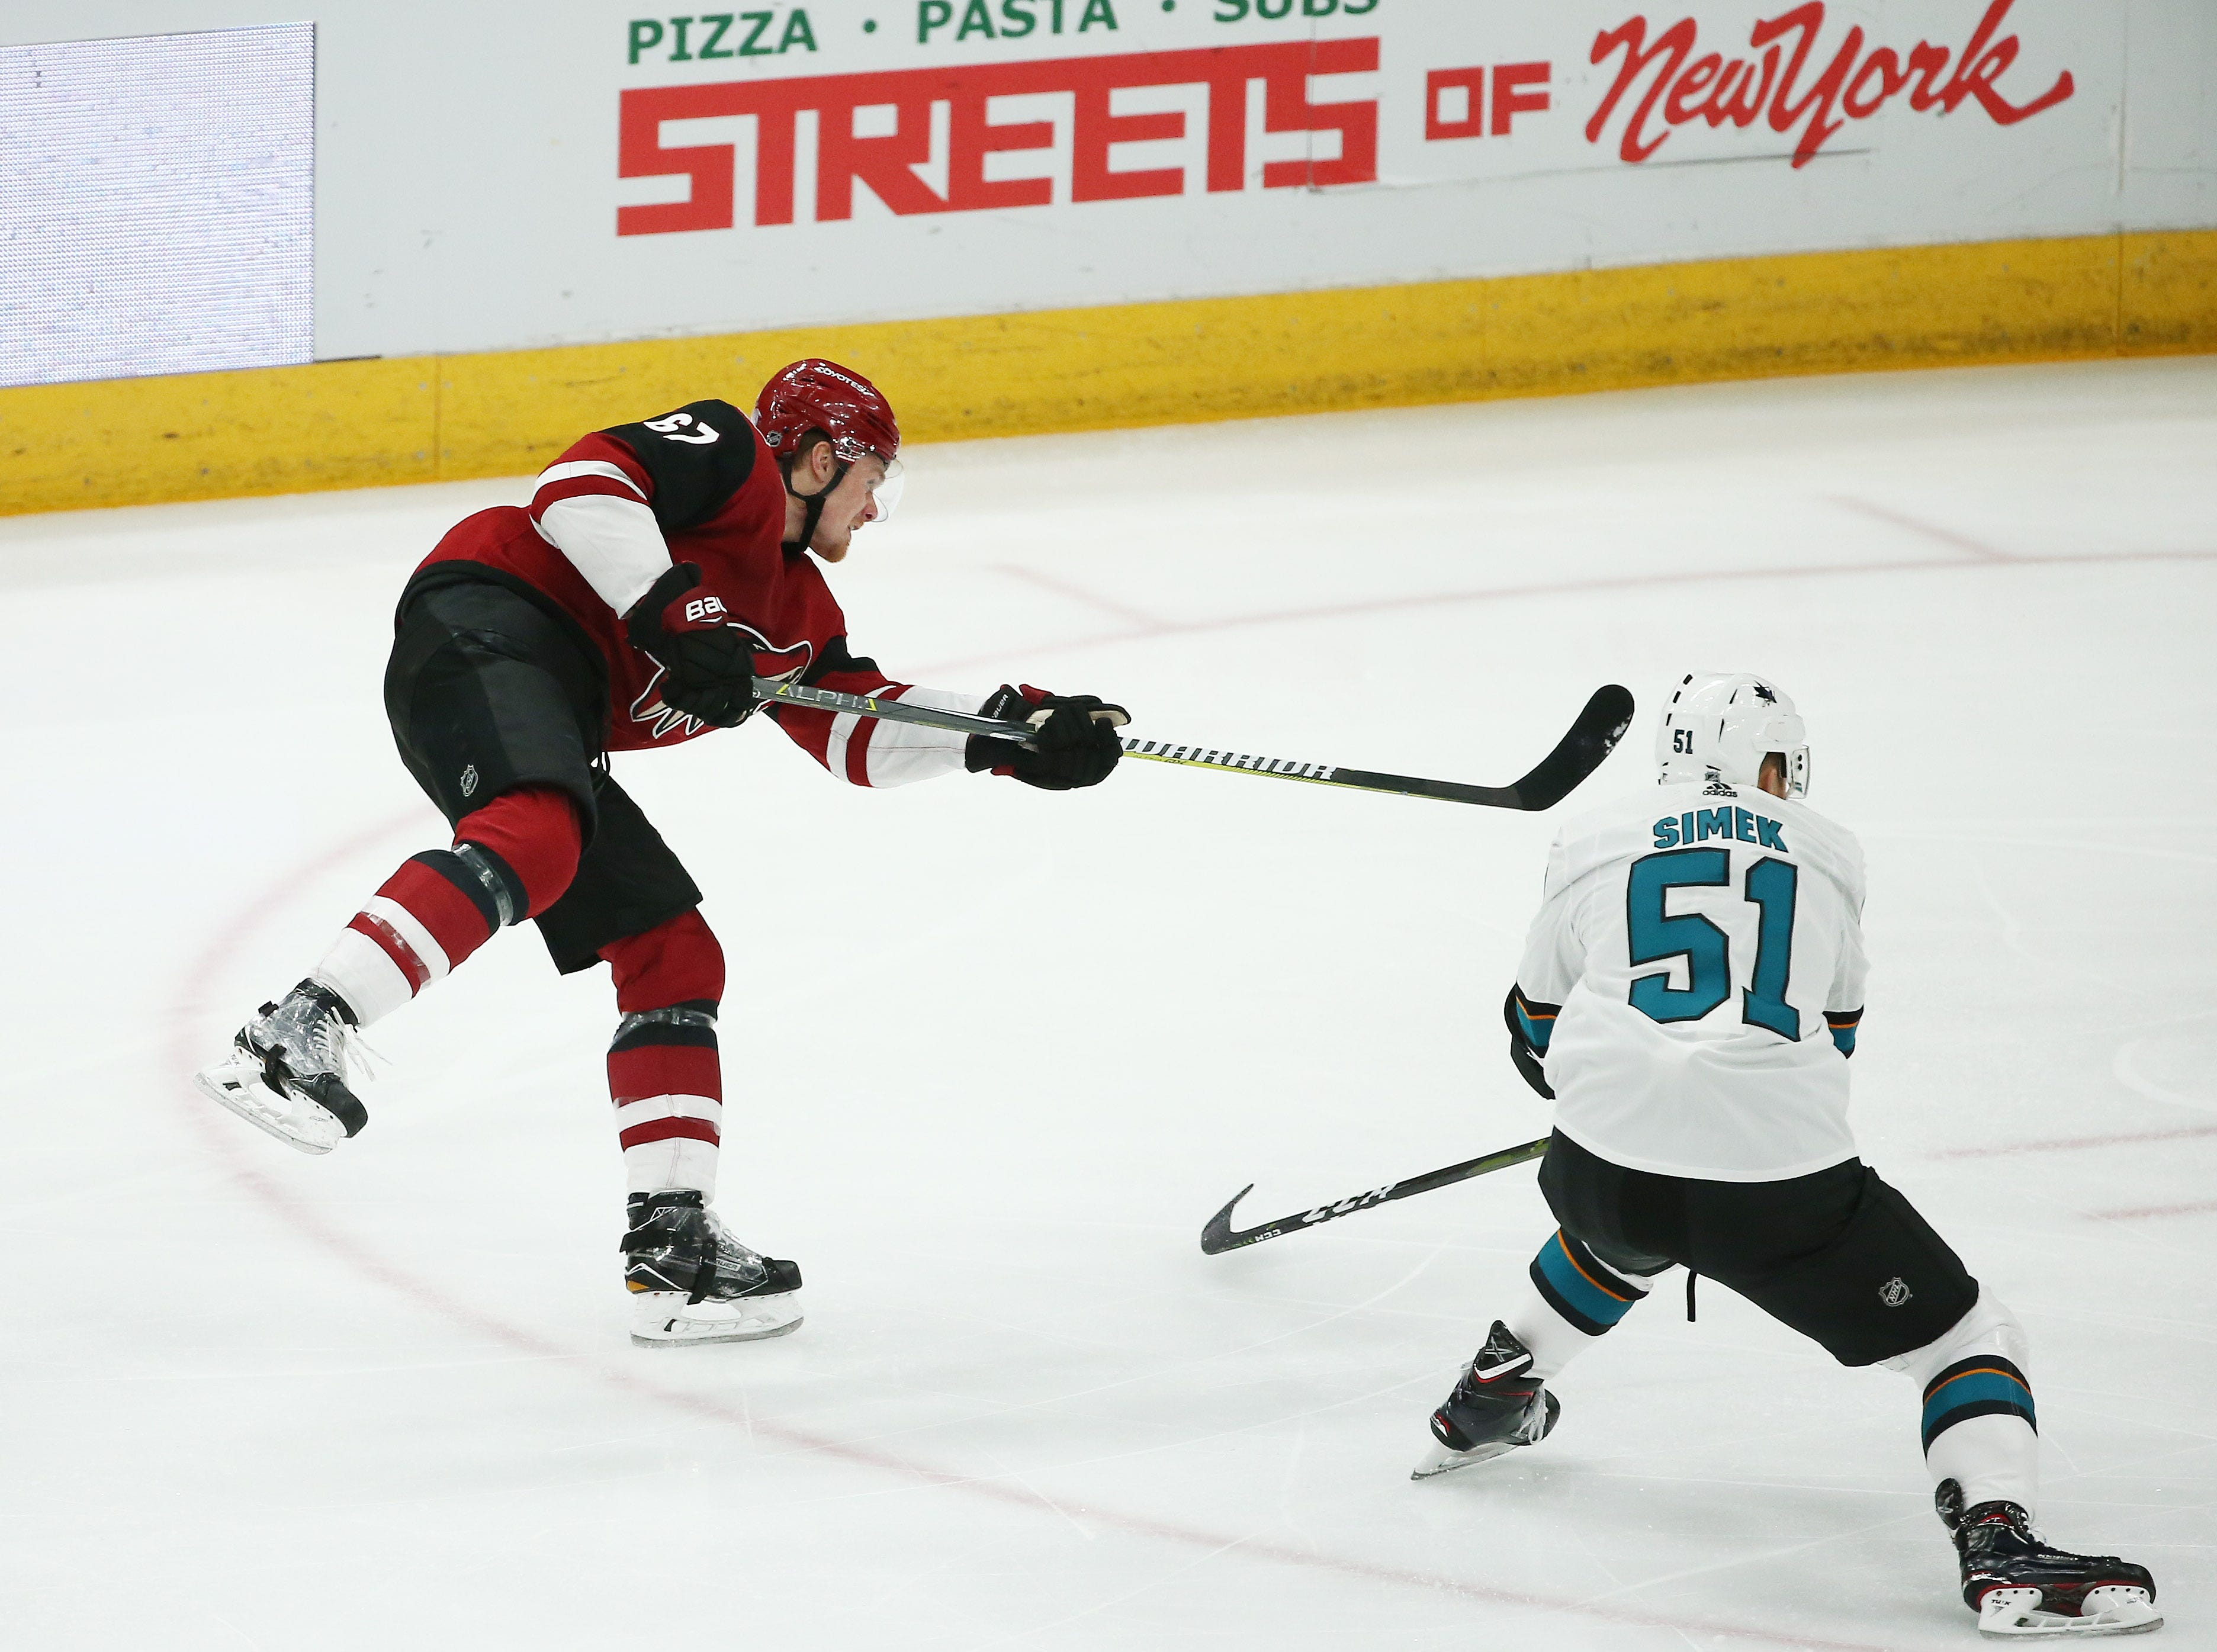 Arizona Coyotes' Lawson Crouse (67) scores a goal against the San Jose Sharks in the 1st period on Jan. 16 at Gila River Arena.